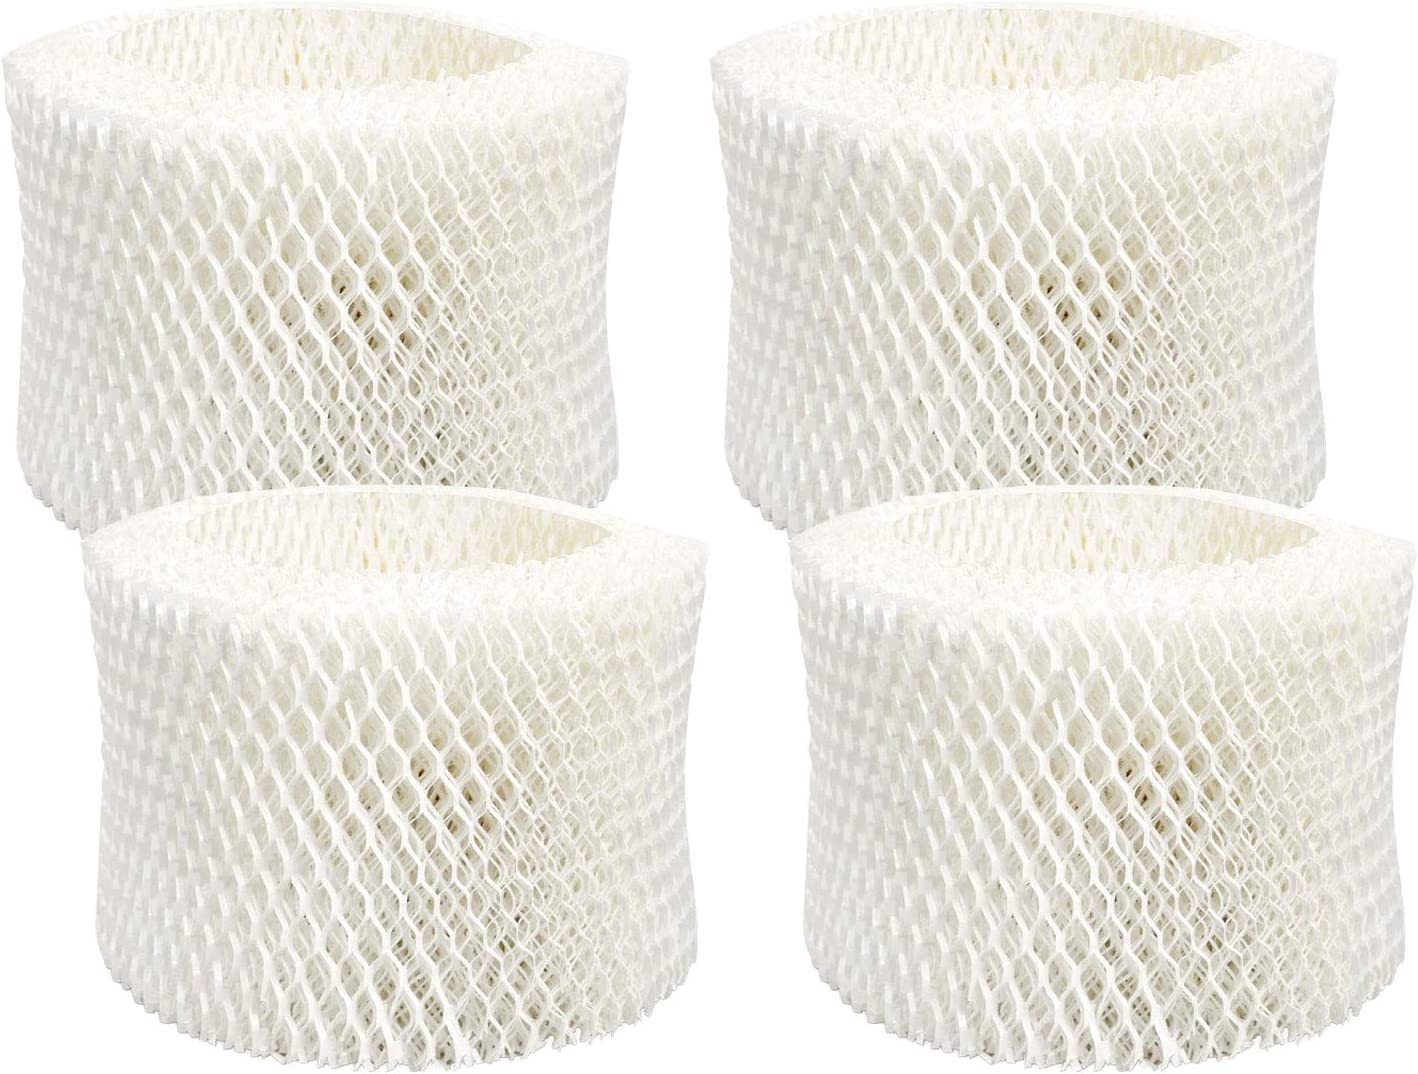 Lemige 4 Minneapolis Mall Pack Humidifier Wicking Honeywe Max 72% OFF Filters Compatible with